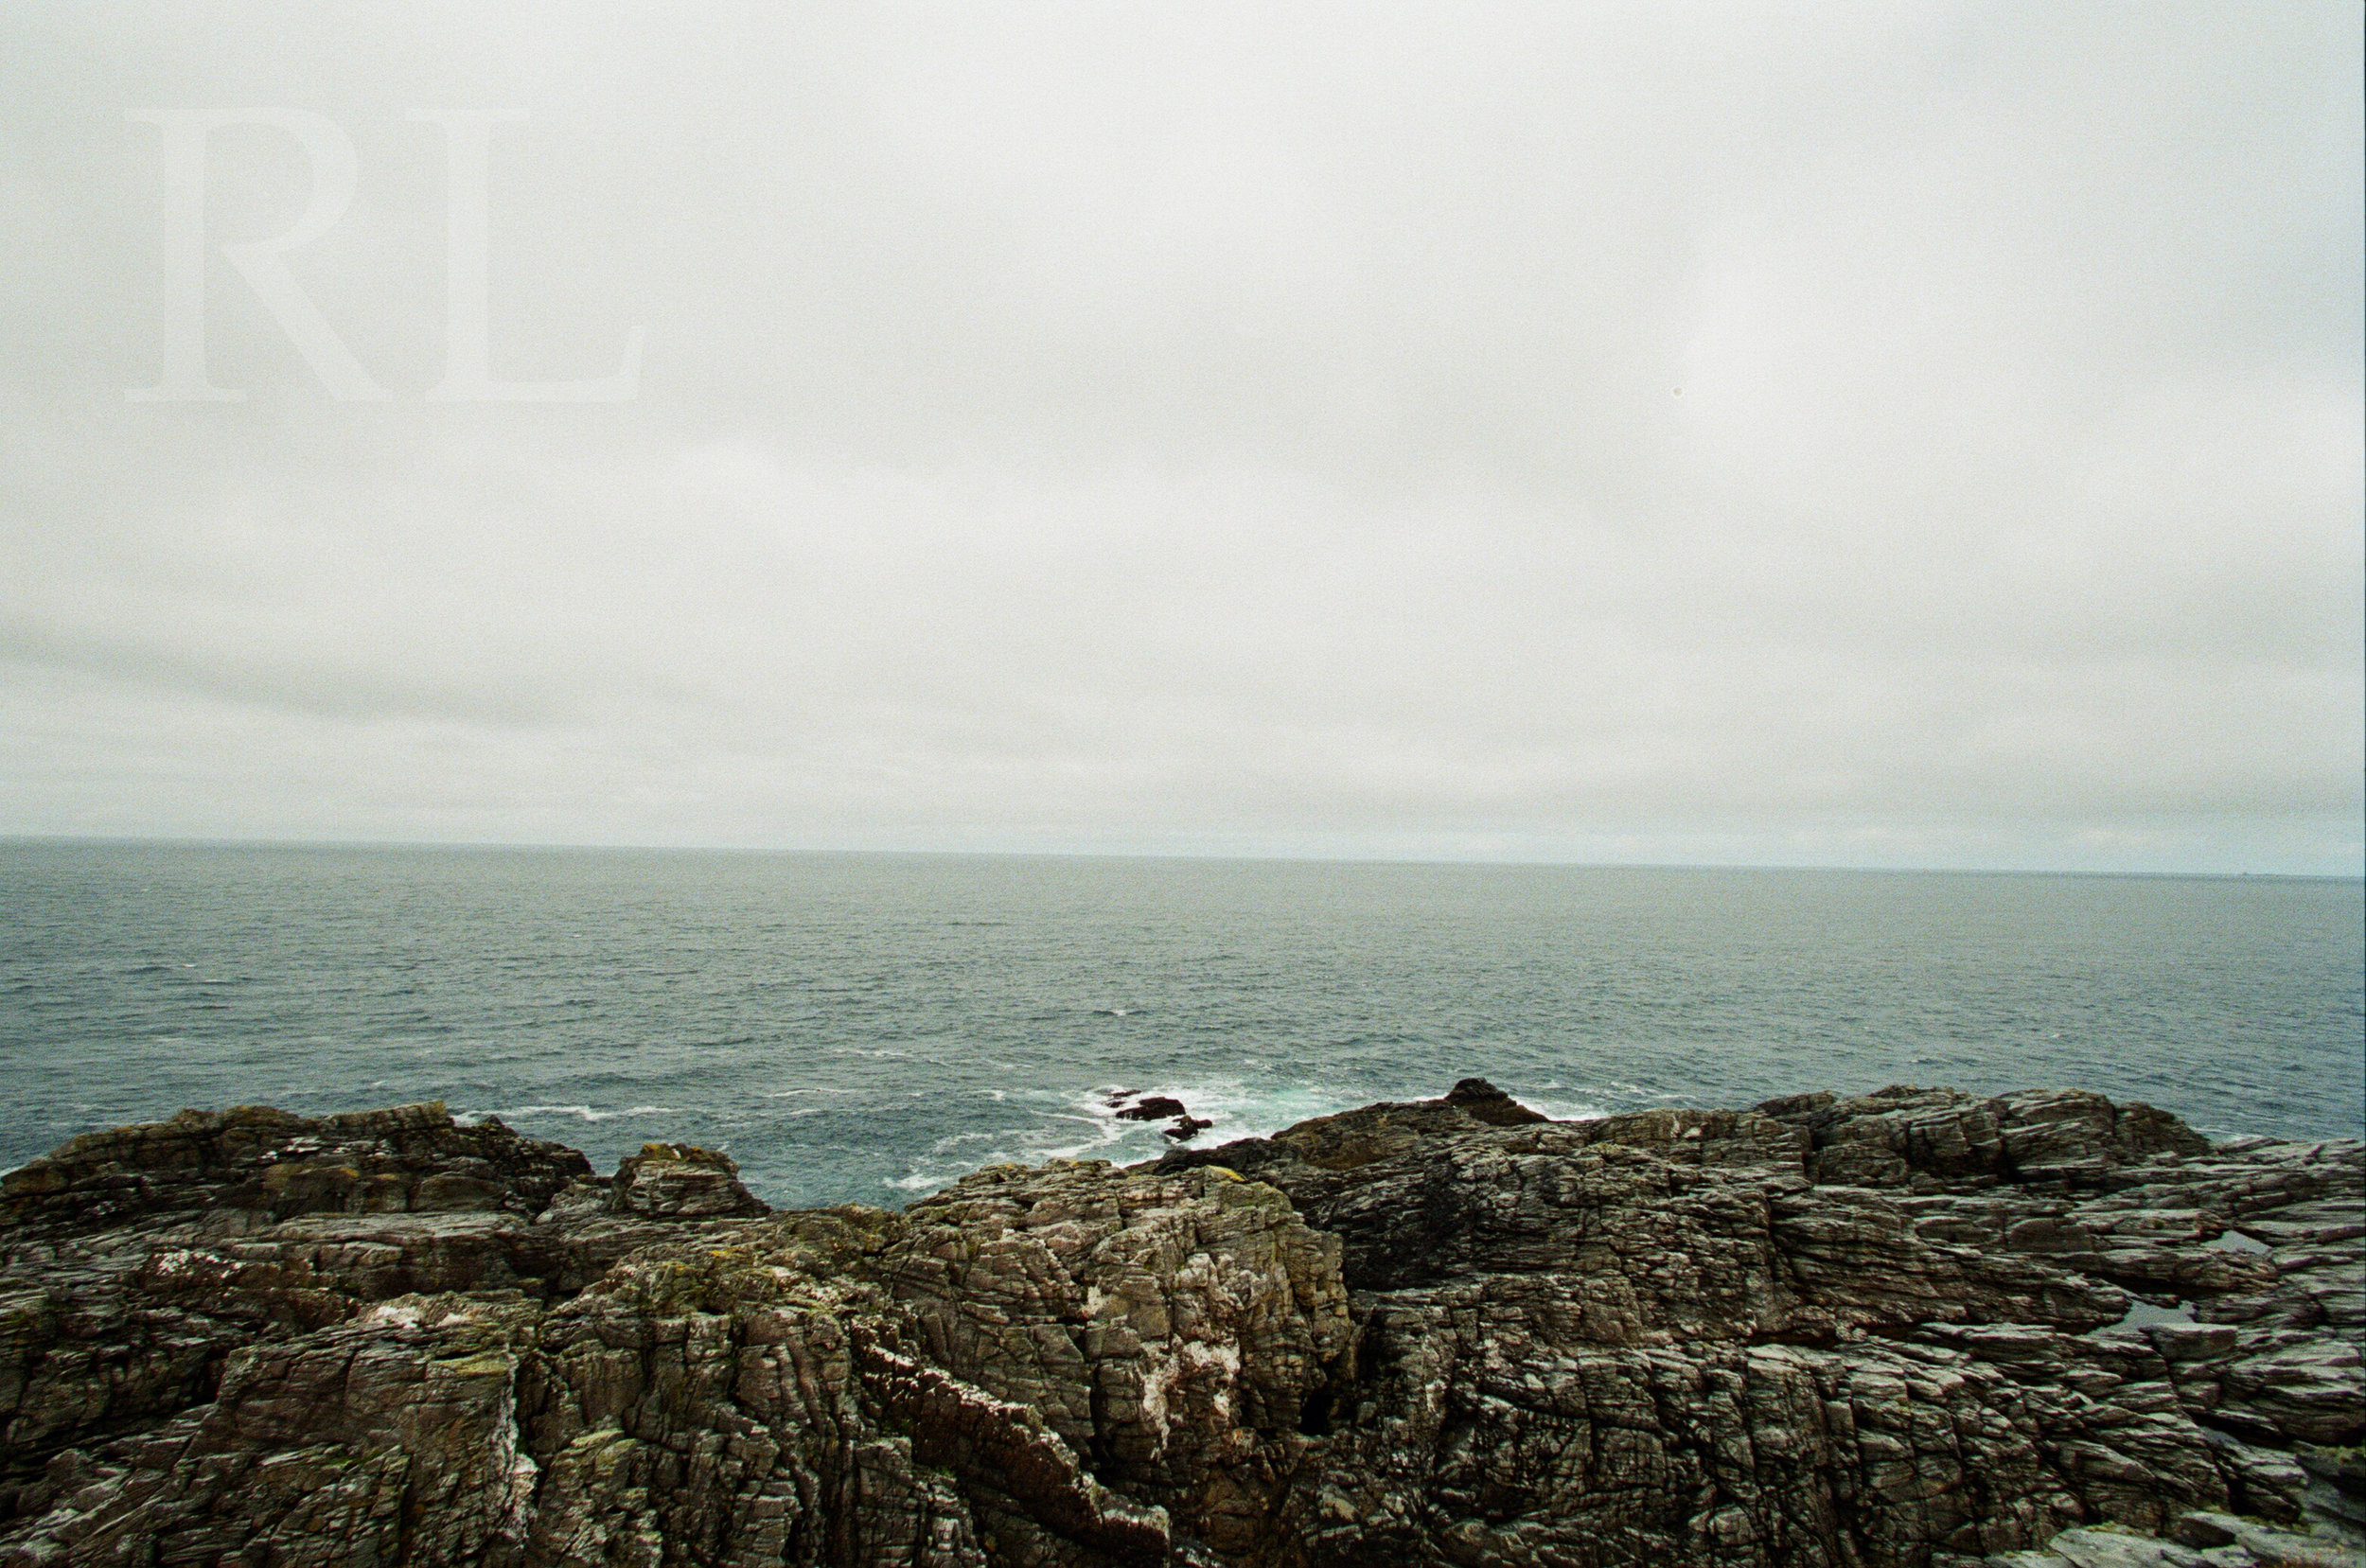 Malin Head and Ocean 1_WM.jpg